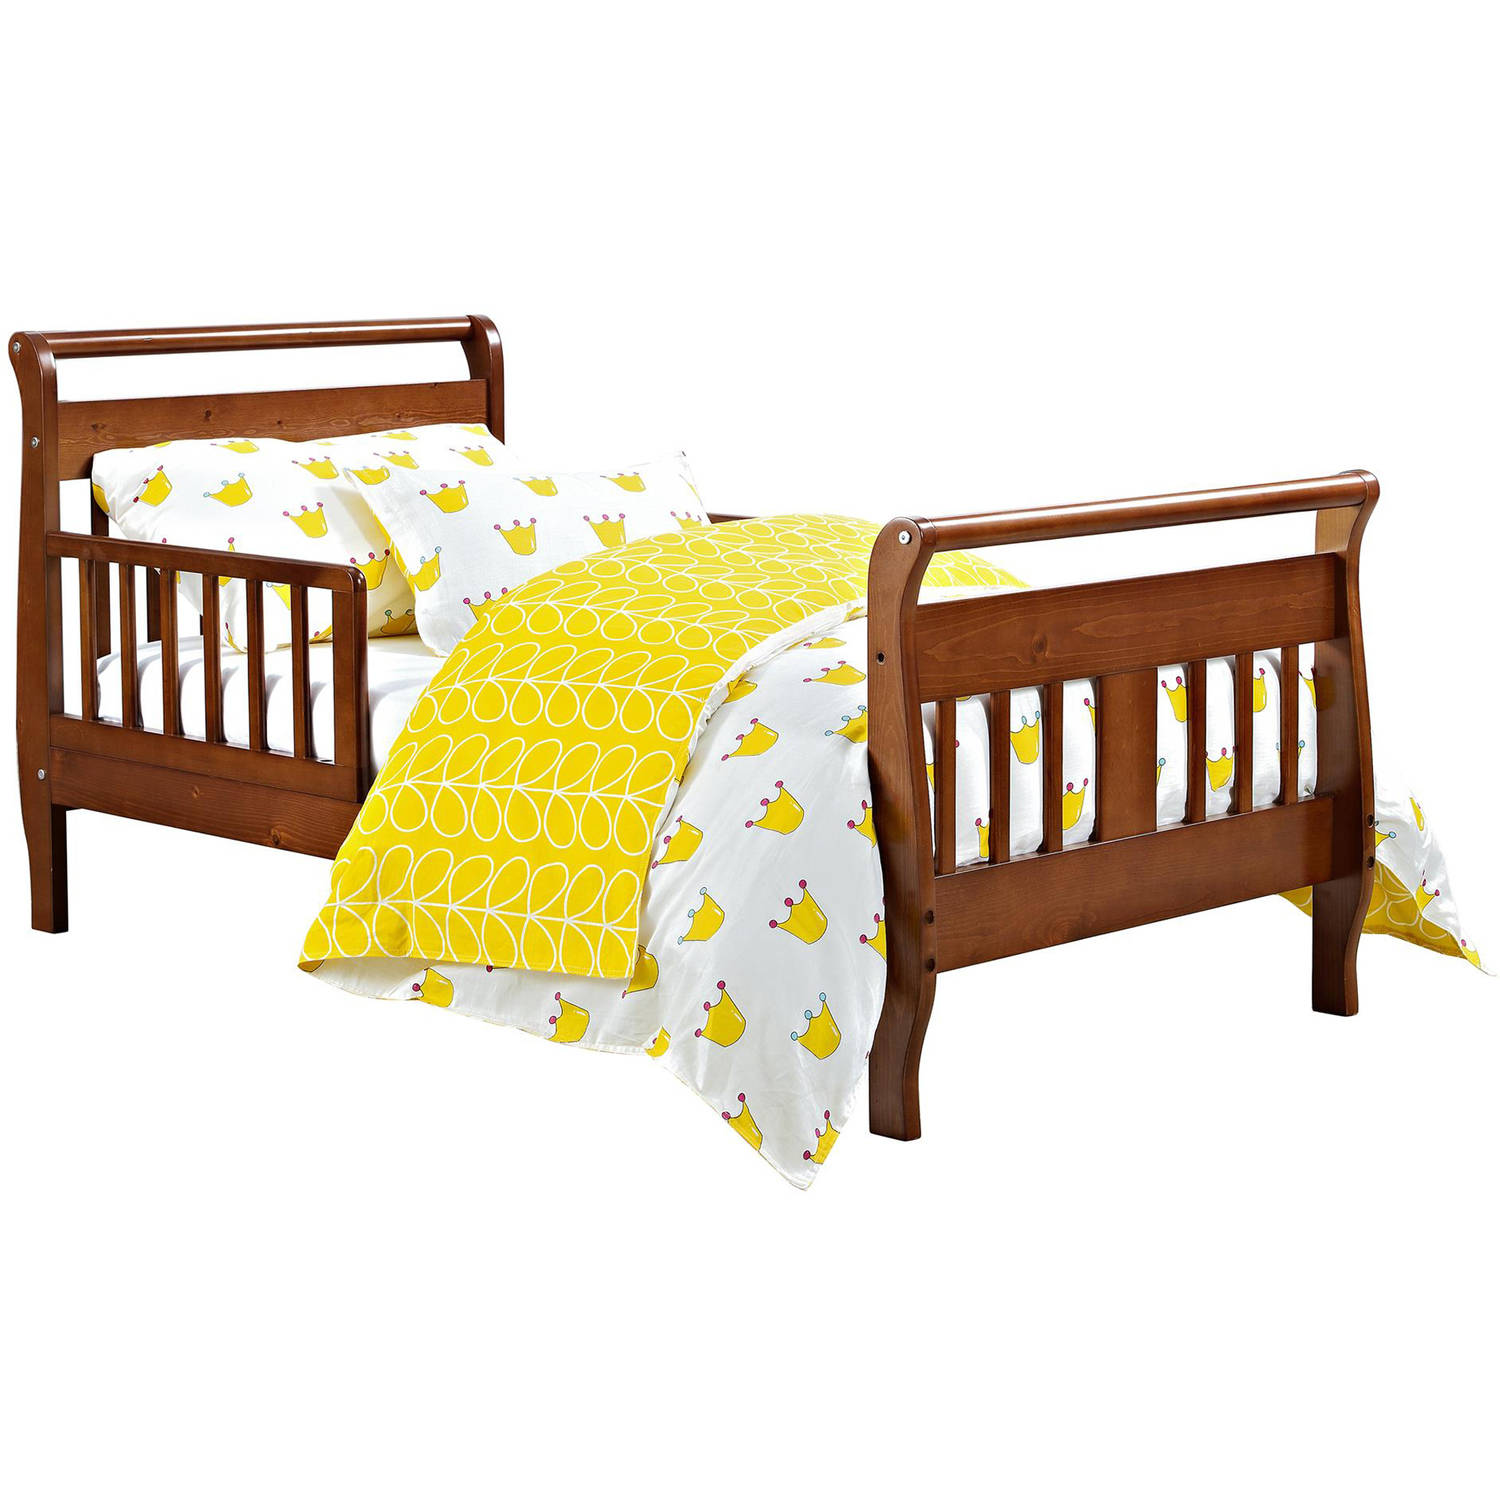 uk stairs bed twin fresh for bunk beds from stairway toddler crib over with loft jameso toddlers